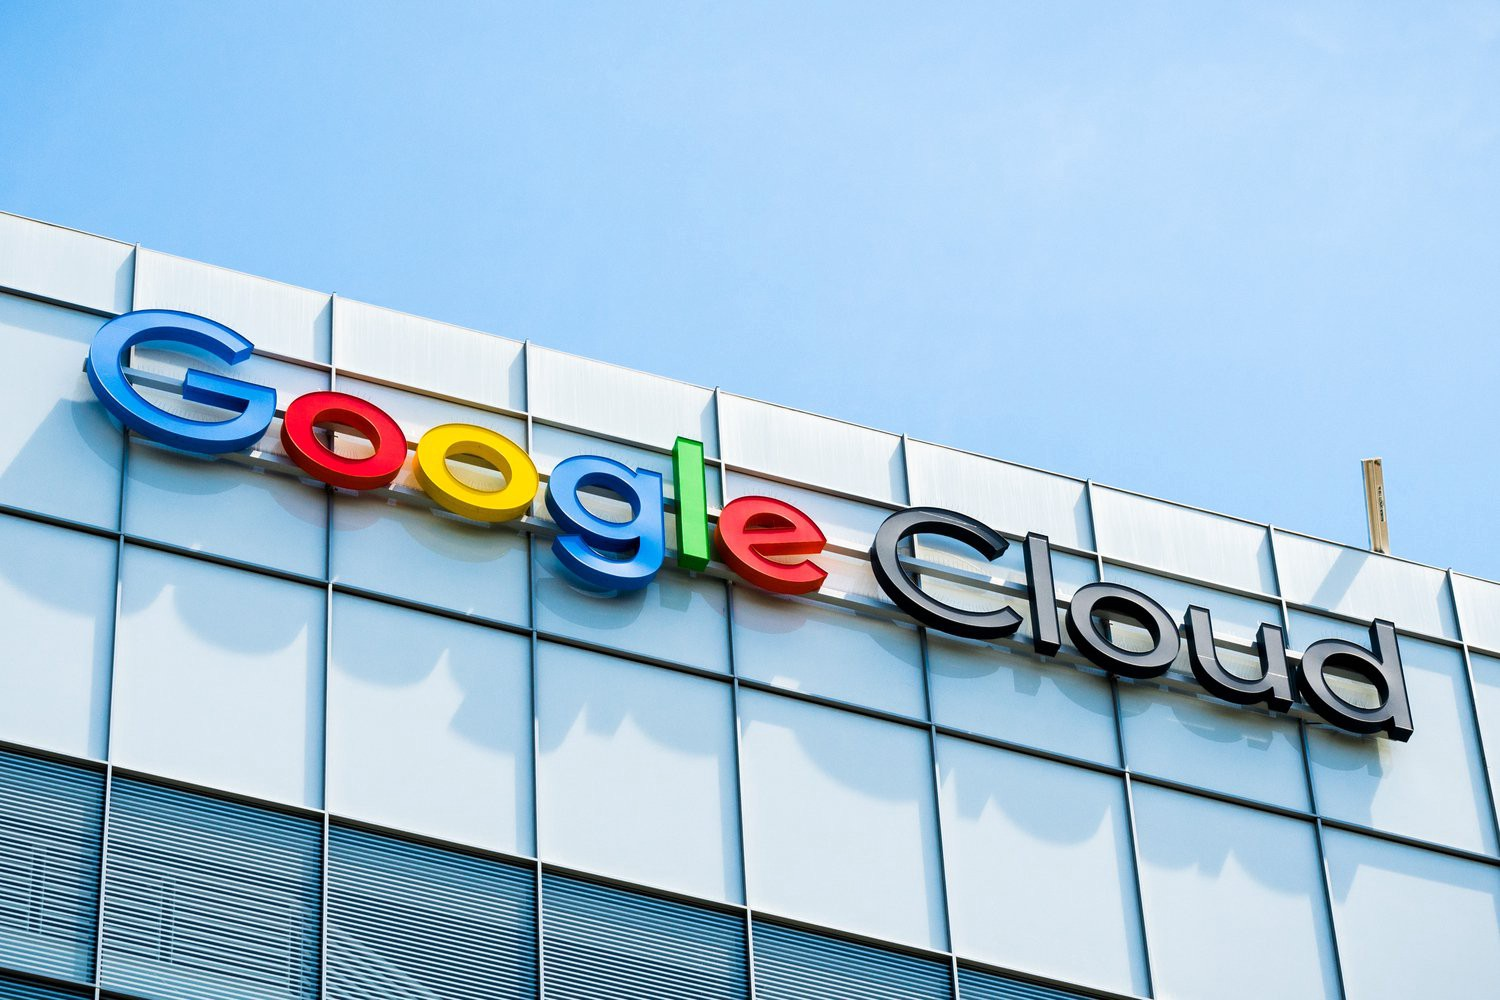 Google to provide blockchain as part of cloud service